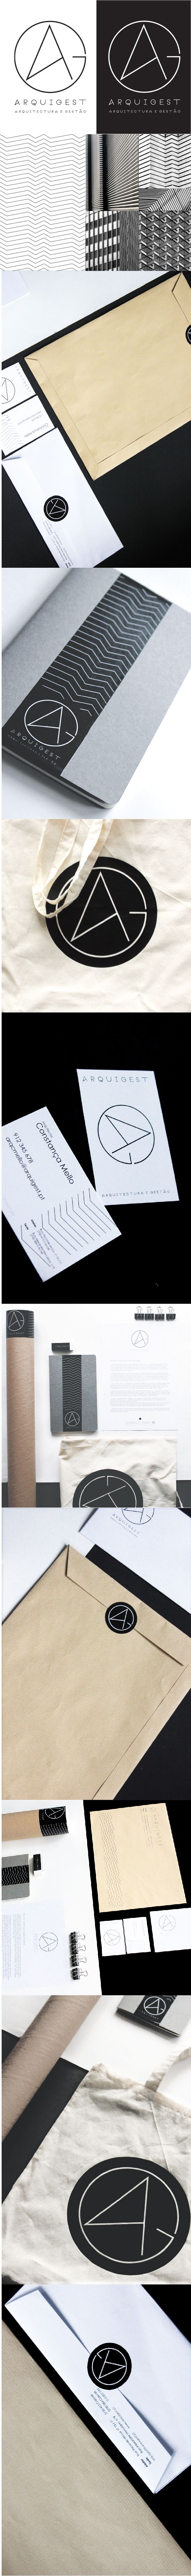 "Check out new work on my @Behance portfolio: ""Branding Arquigest // Atelier de Arquitectura"" http://on.be.net/1K1zL4J"